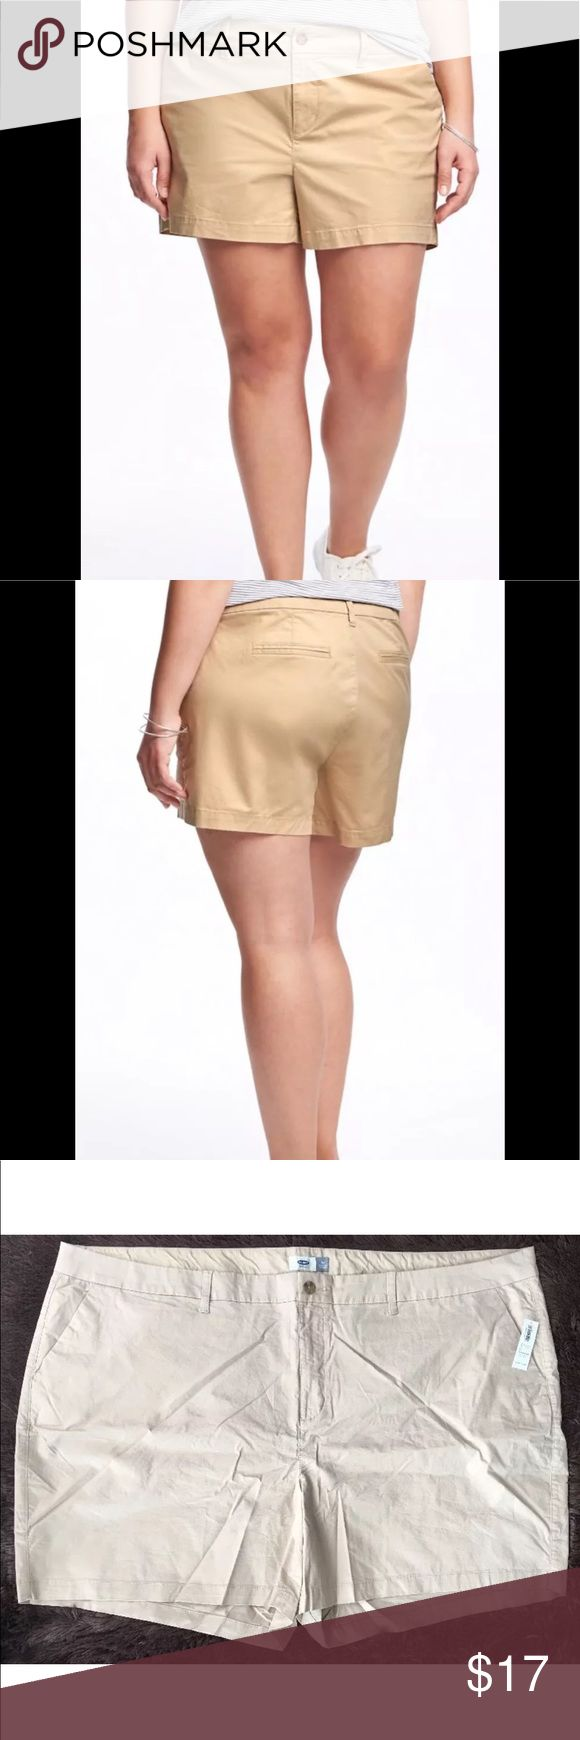 """Beige Flat Front Cotton/Spandex Shorts NWT women's Old Navy brand beige shorts-size 30  • flat front • two pocket (front) • 97% cotton; 3% spandex  • original price $32.94 • from clean and smoke-free home  FLAT MEASUREMENTS: waist 28""""; hips 32""""; front rise 14.5""""; inseam 6""""; leg opening at hem 18.5"""" Old Navy Shorts"""